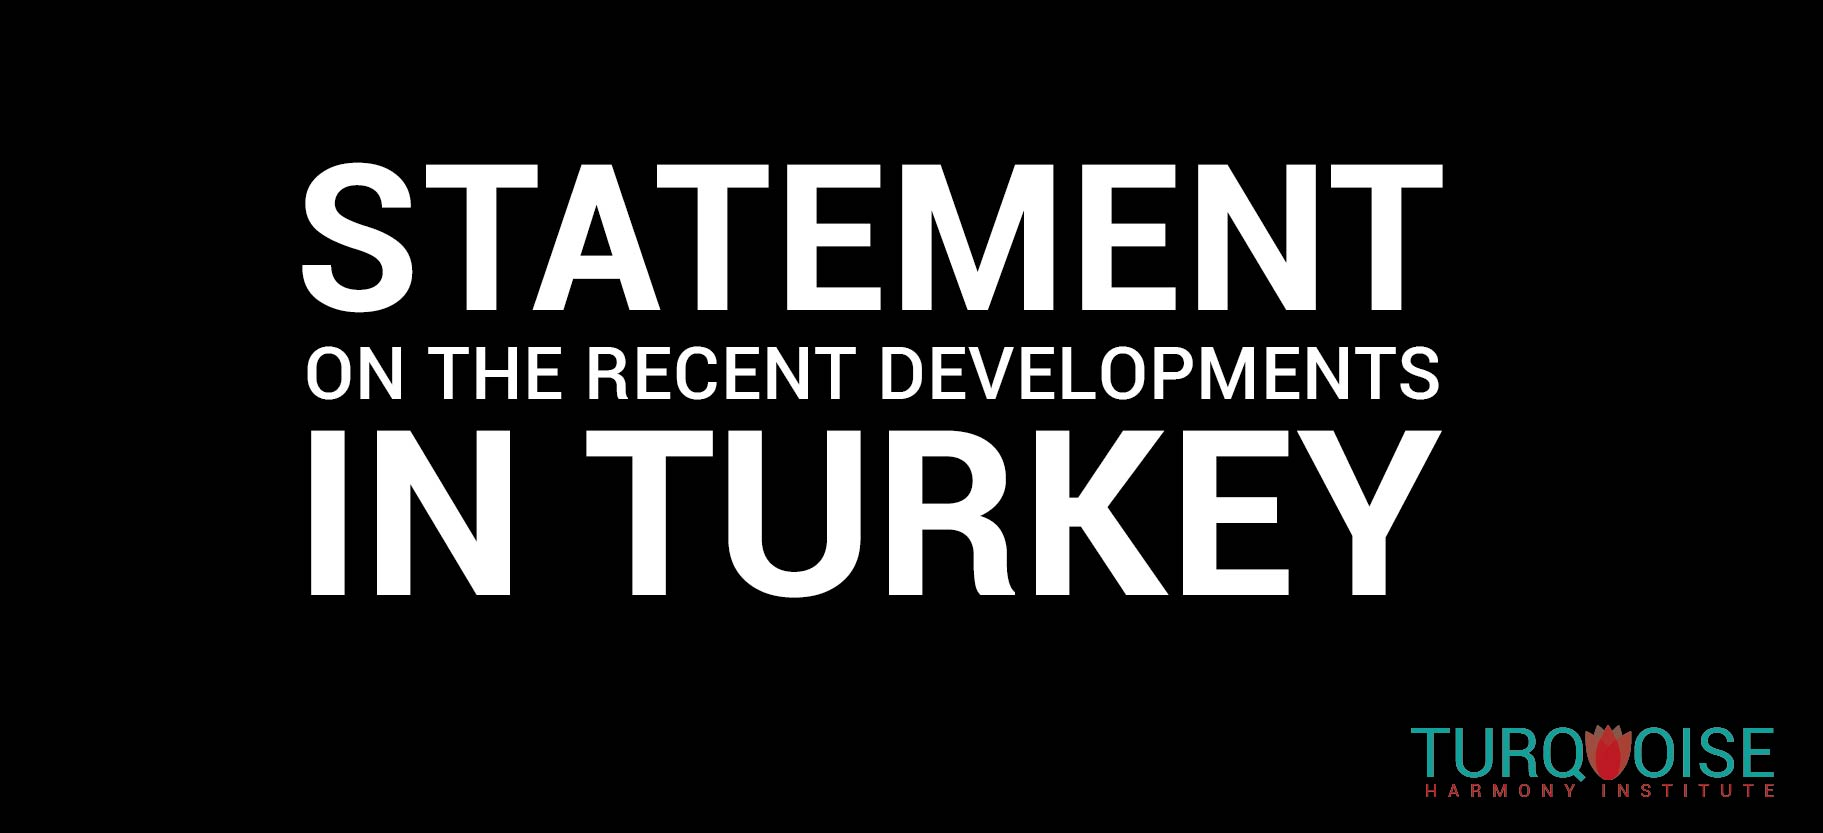 Statement on the recent developments in Turkey